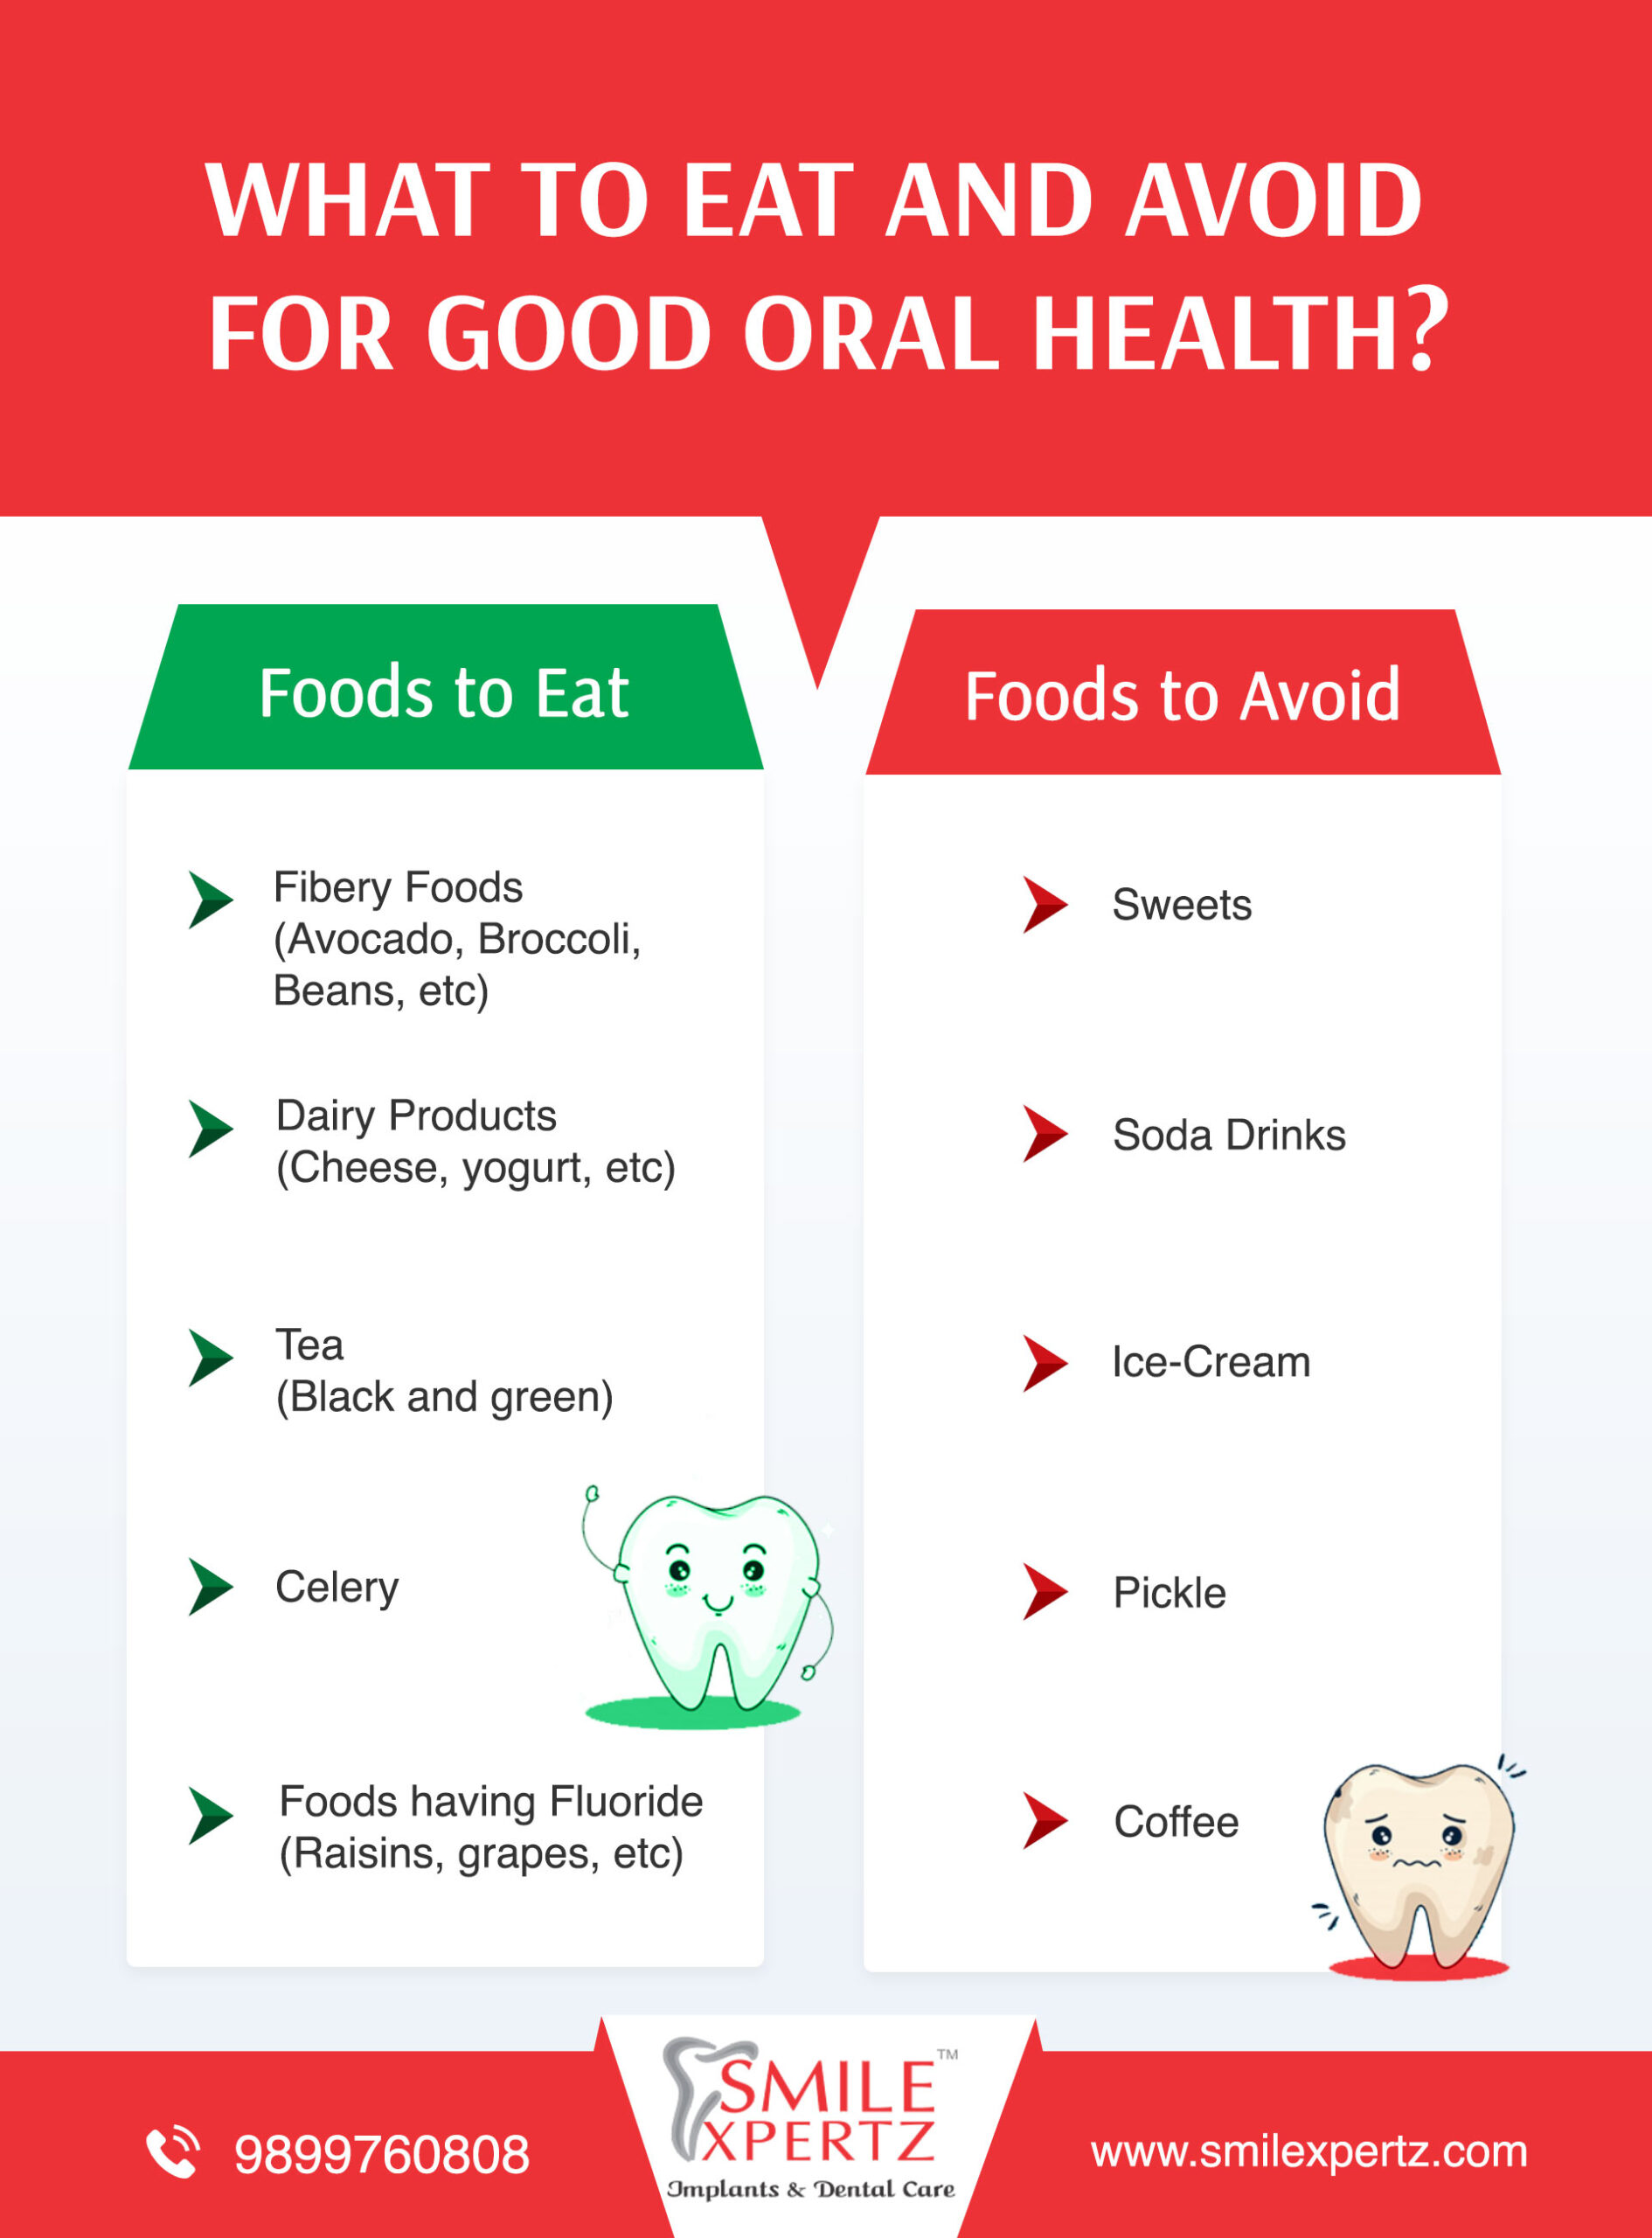 What to eat and avoid for Good Oral Health